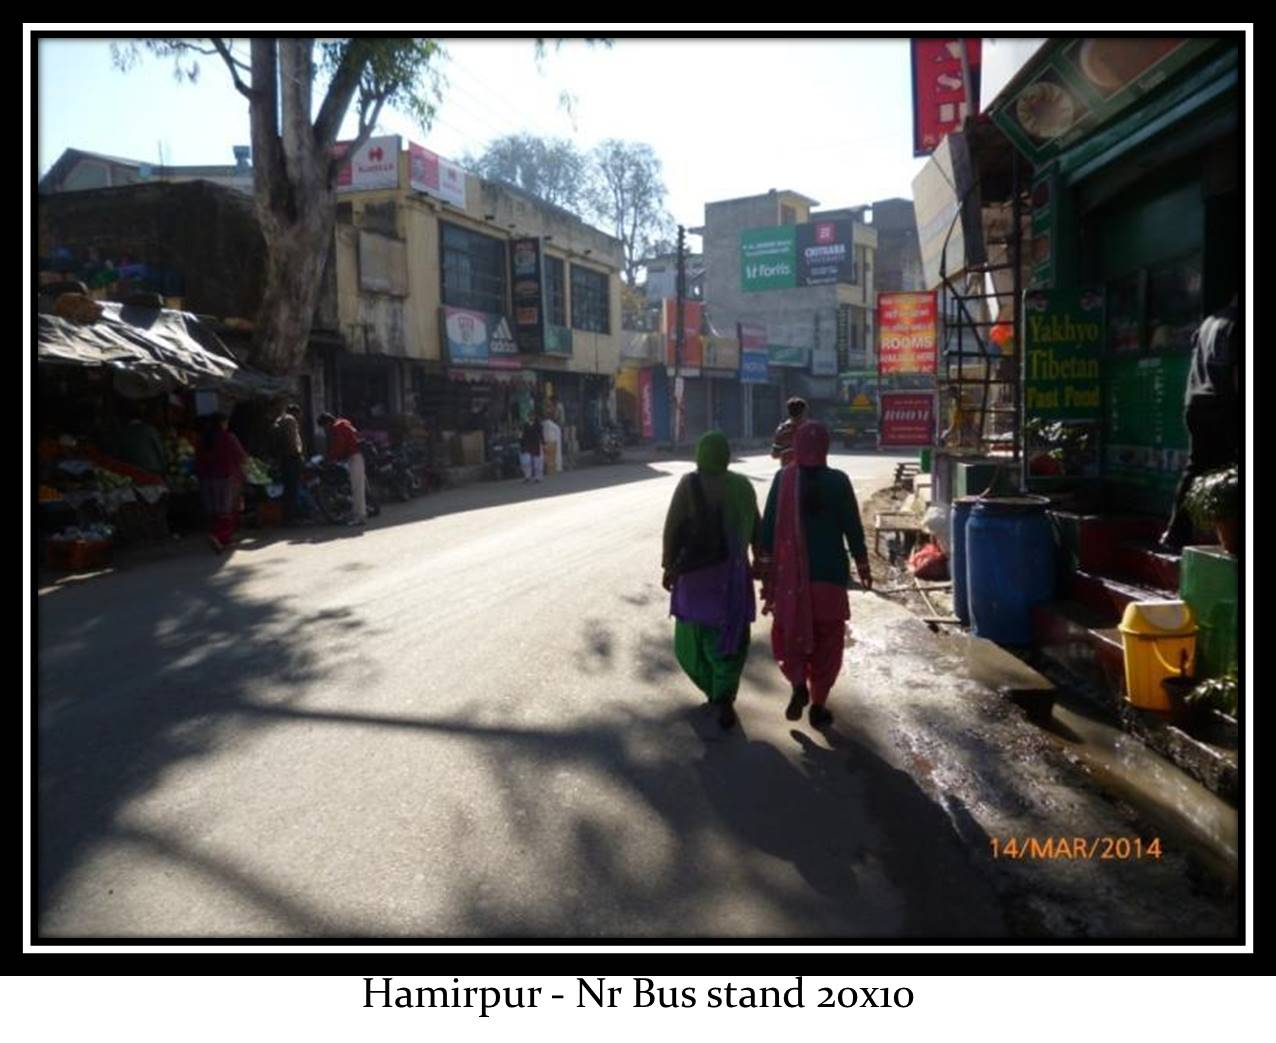 Nr Bus stand, Hamirpur